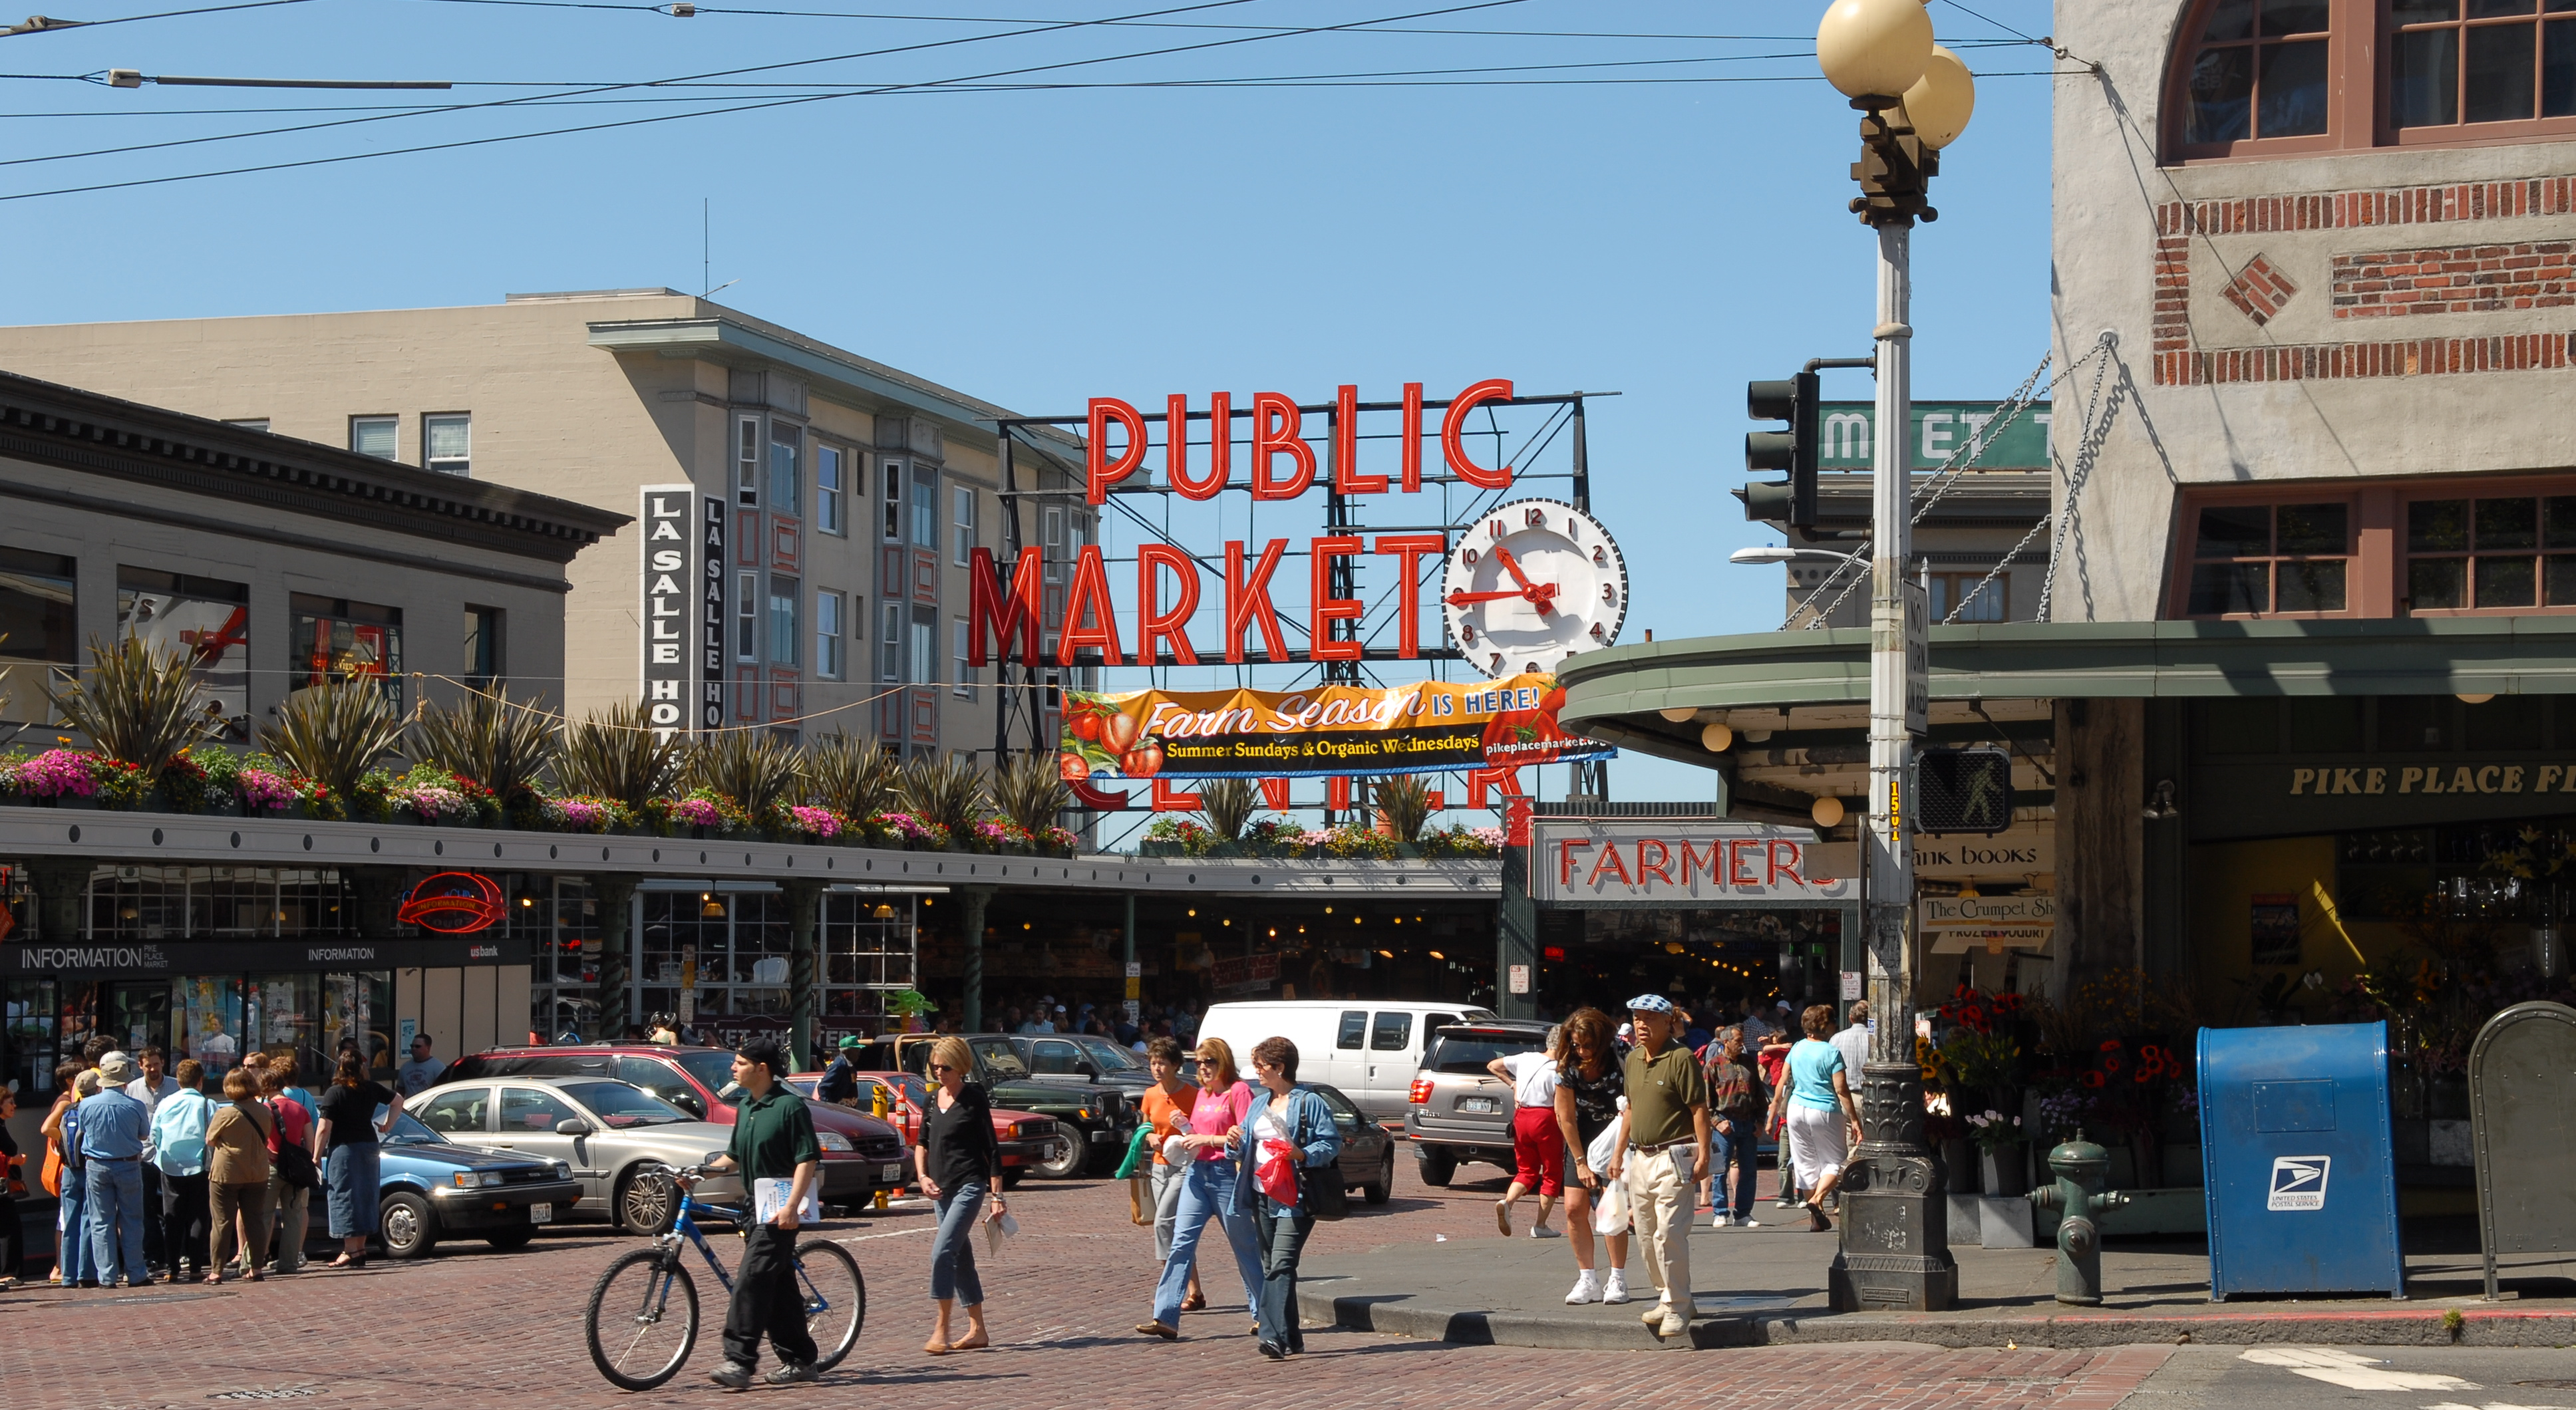 Seattle's famed Public Market